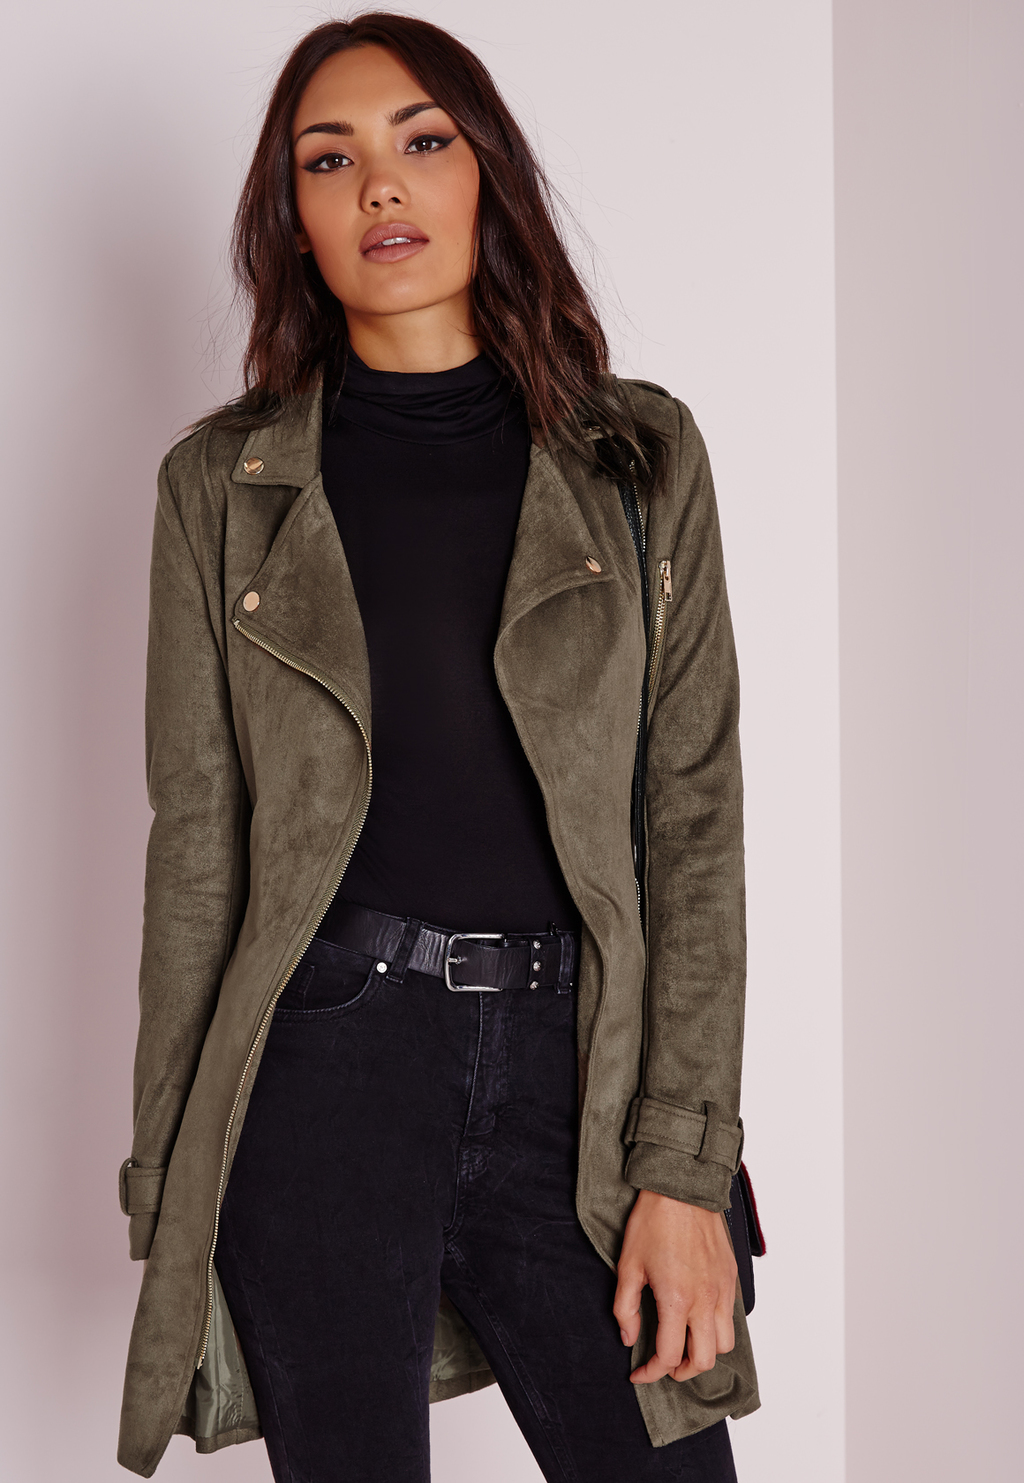 Longline Zazula Suede Biker Jacket Khaki, Beige - pattern: plain; style: biker; collar: asymmetric biker; predominant colour: khaki; occasions: casual, creative work; fit: tailored/fitted; length: mid thigh; sleeve length: long sleeve; sleeve style: standard; collar break: low/open; pattern type: fabric; texture group: suede; fibres: nylon - stretch; season: a/w 2015